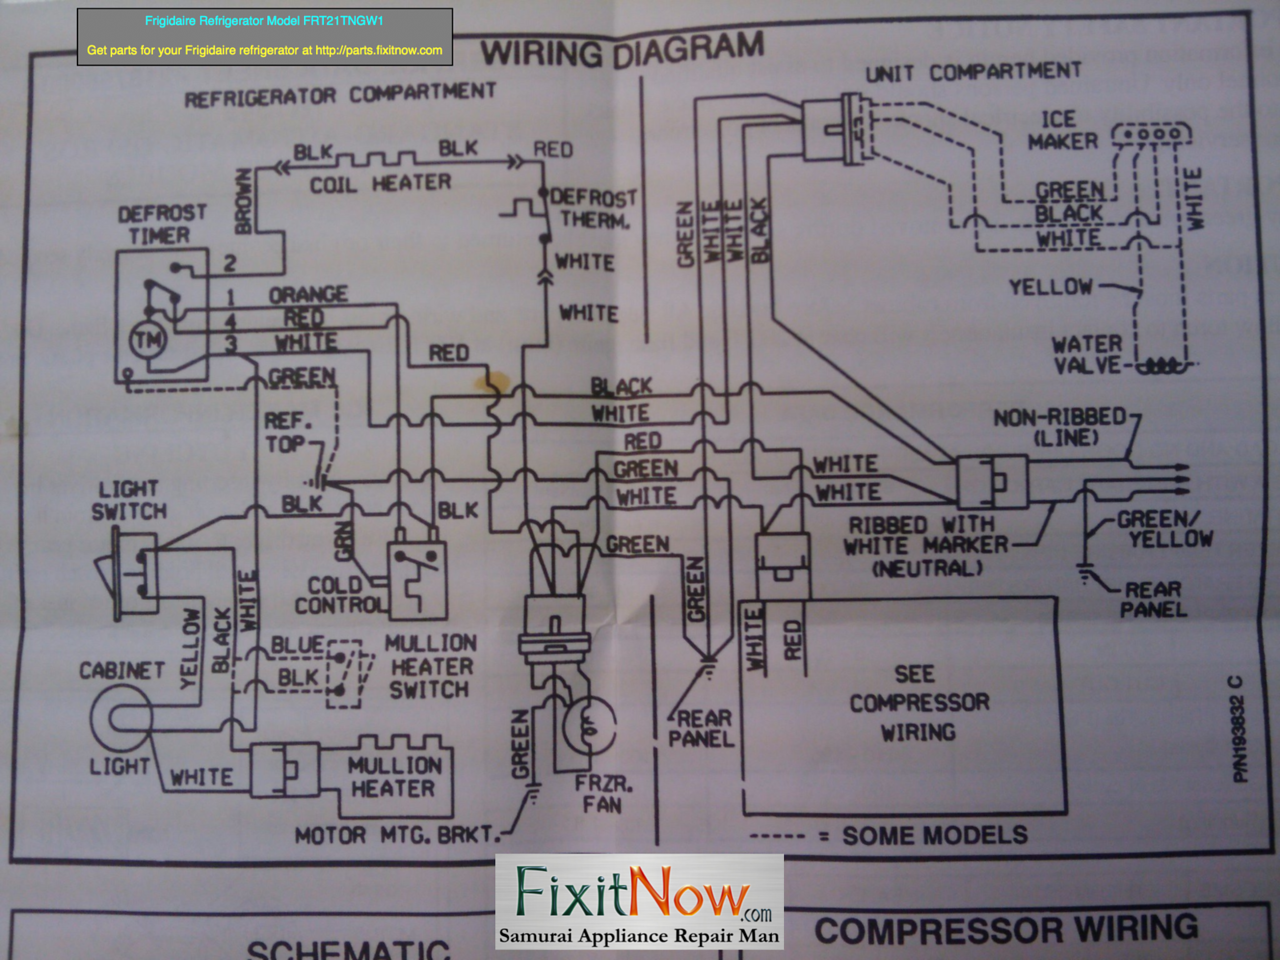 Wiring diagrams and schematics appliantology frigidaire refrigerator model frt21tngw1 wiring diagram swarovskicordoba